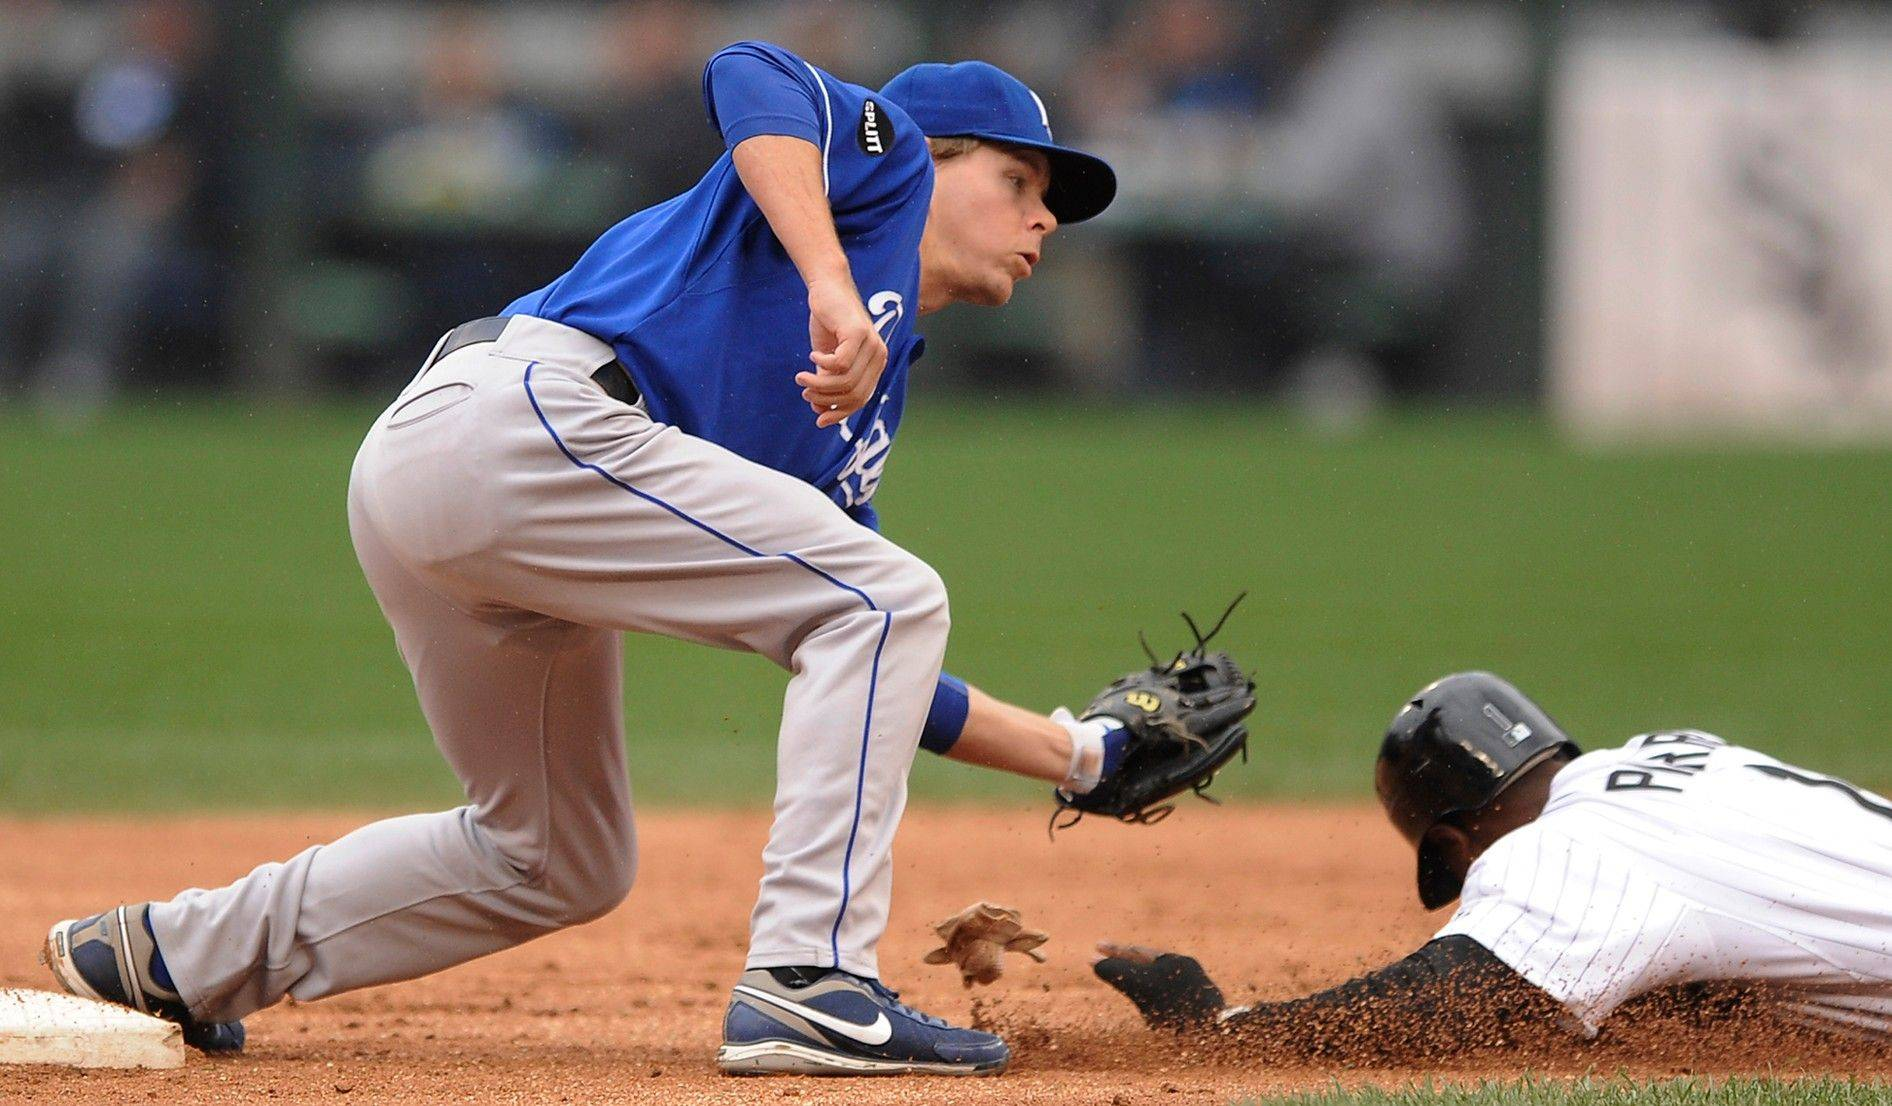 Kansas City Royals second baseman Chris Getz, left, tags out White Sox outfielder Juan Pierre at second base during Sunday�s first inning at U.S. Cellular Field.